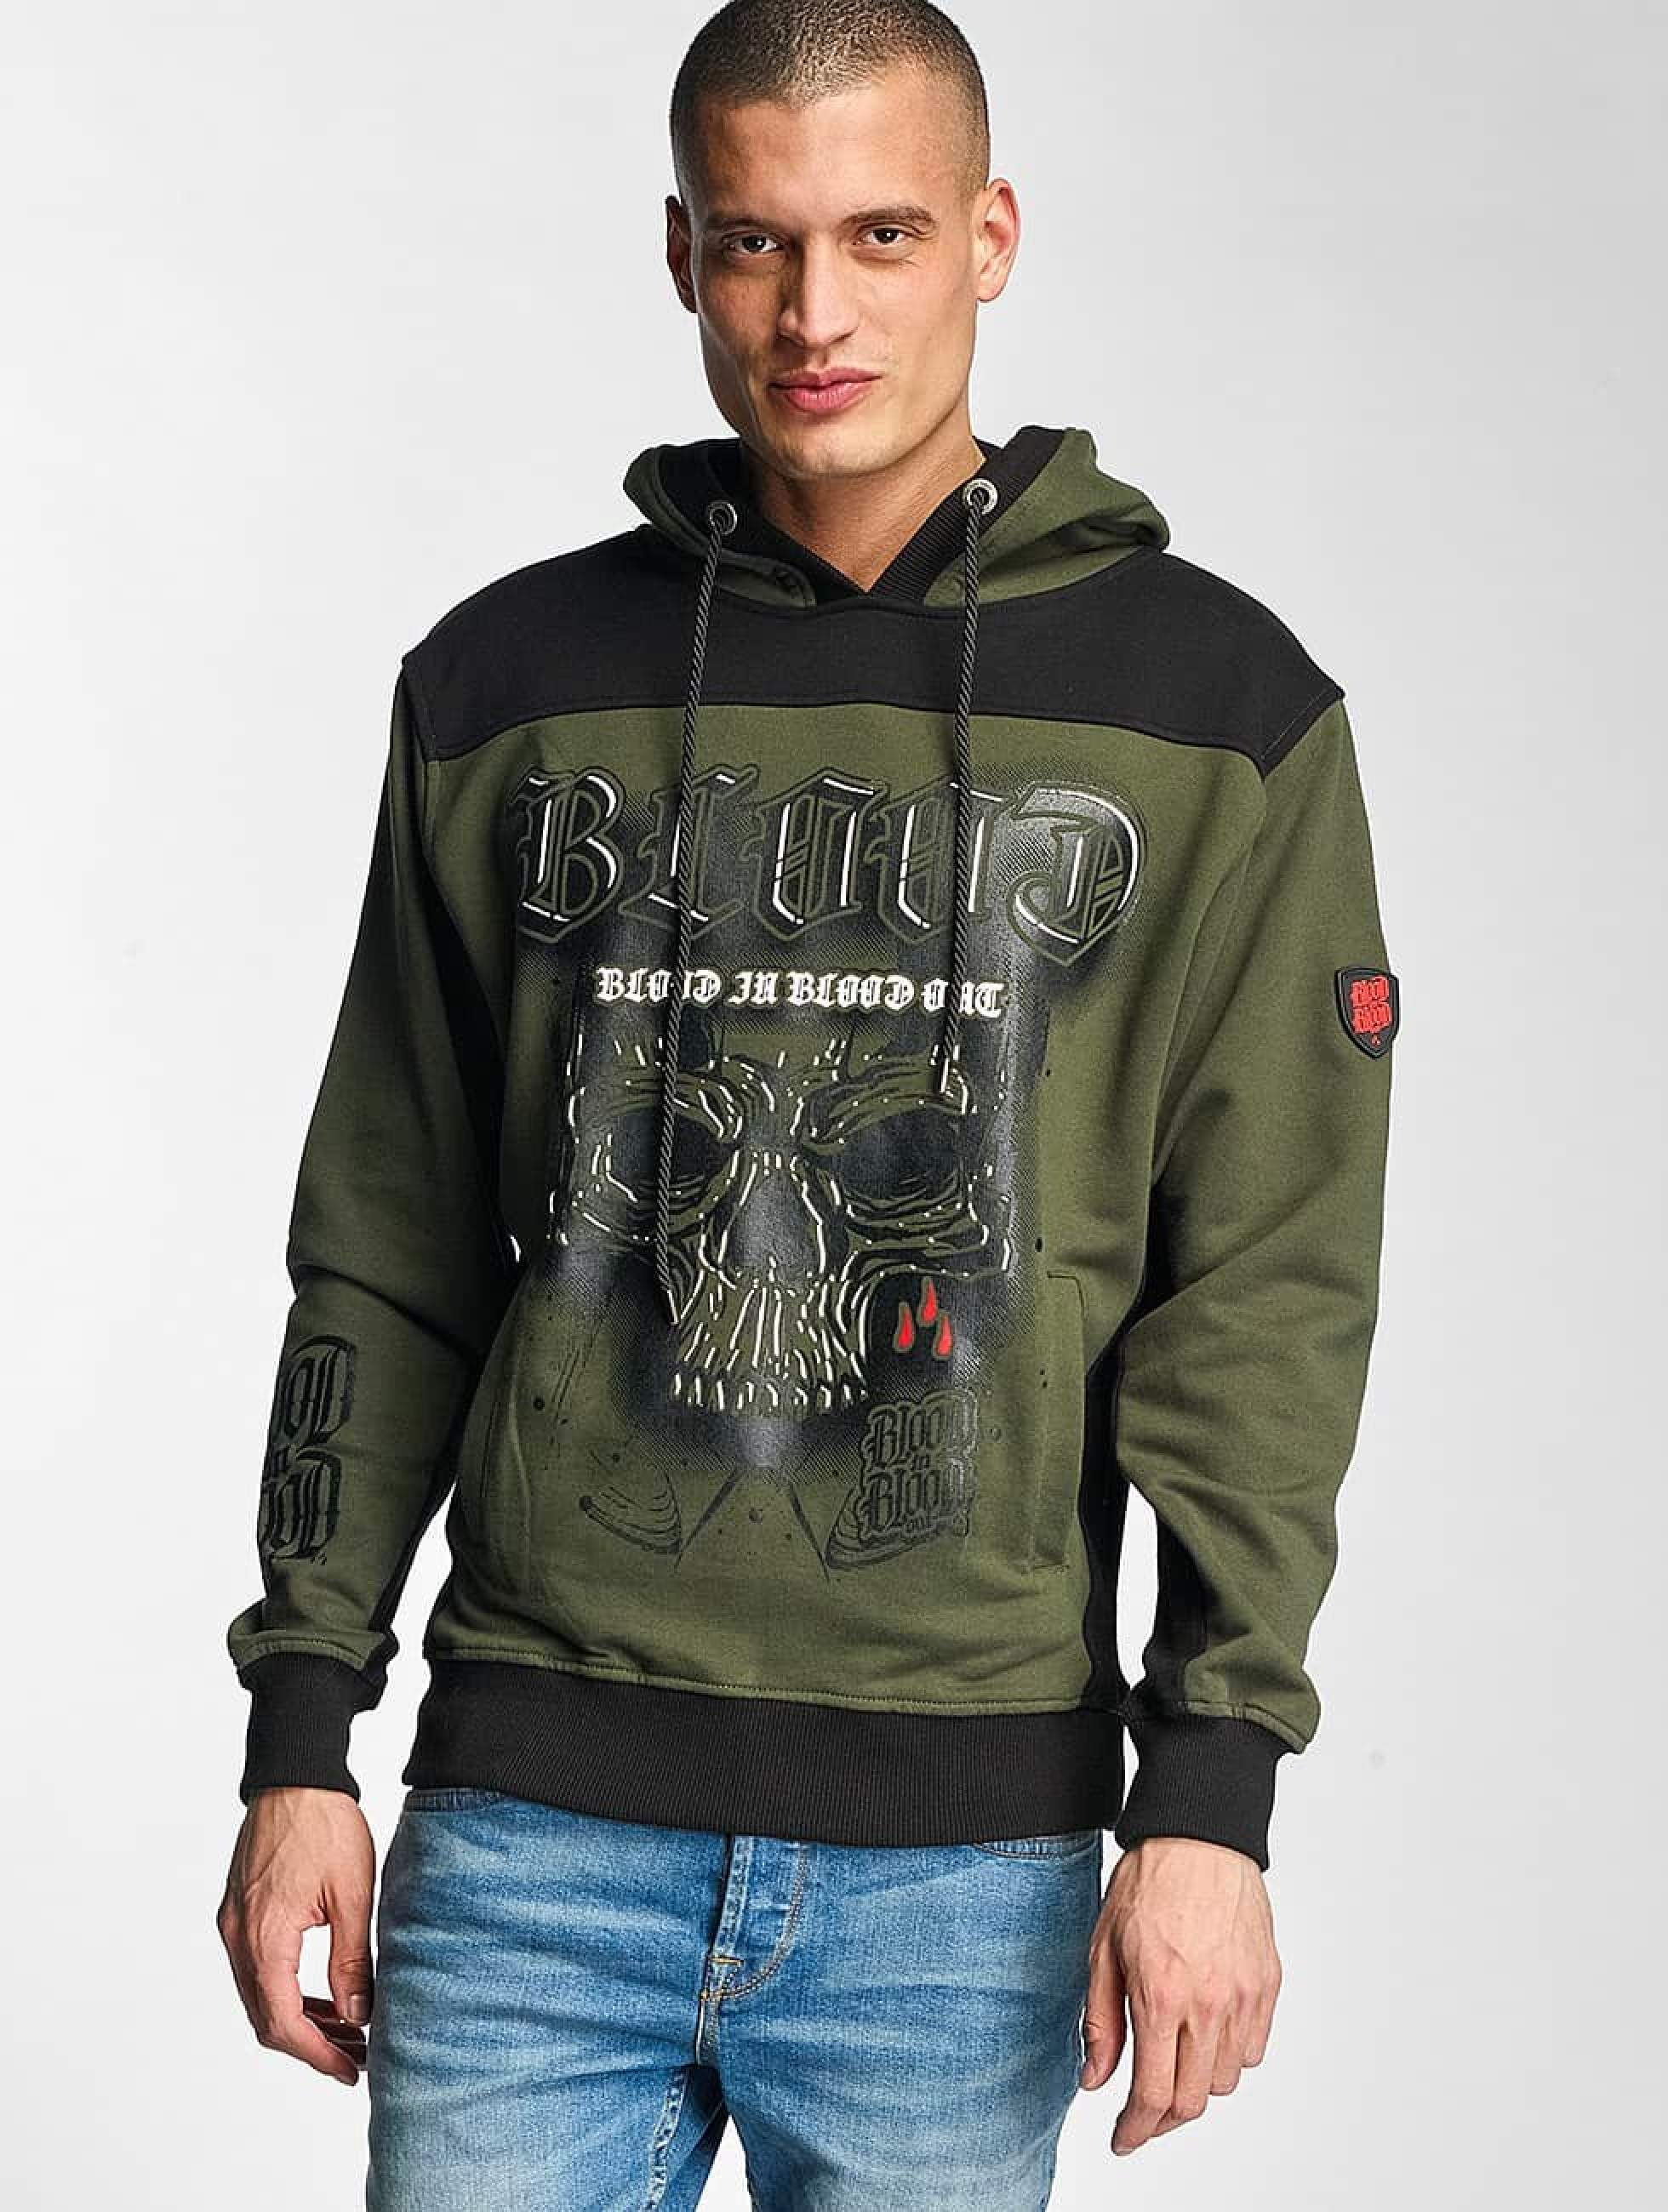 Blood In Blood Out | Chivato  vert Homme Sweat capuche